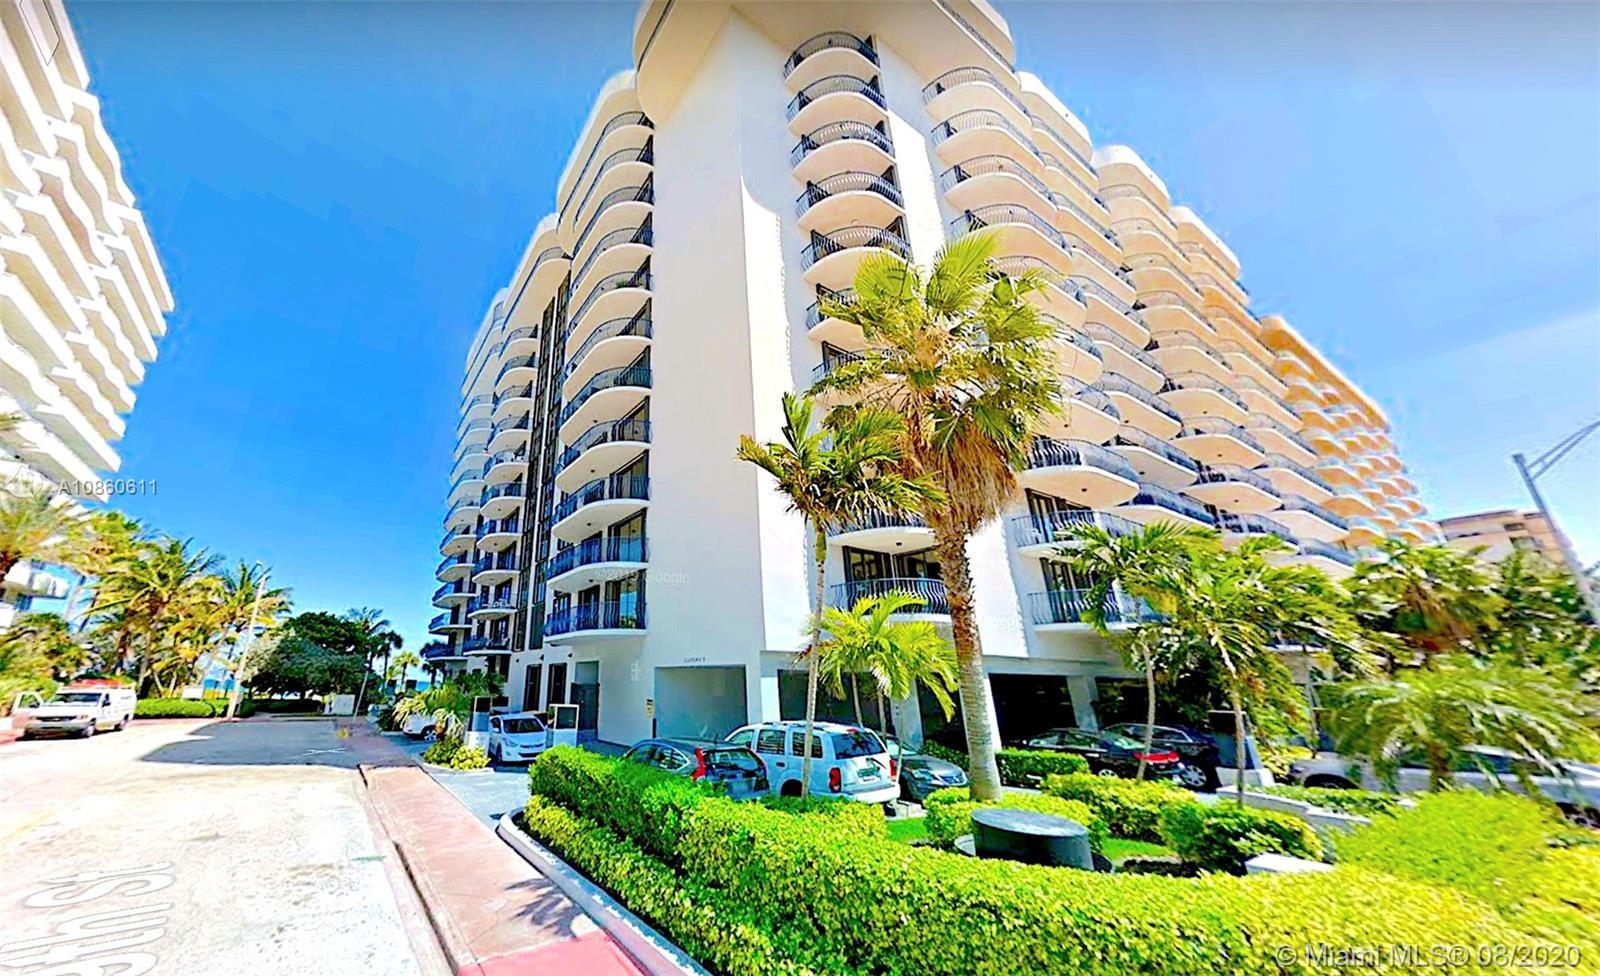 LOWEST PRICE IN THE BUILDING!!! BREATHTAKING SUNSETS AND CITY VIEWS, LARGE BALCONY, OCEANFRONT BOUTI